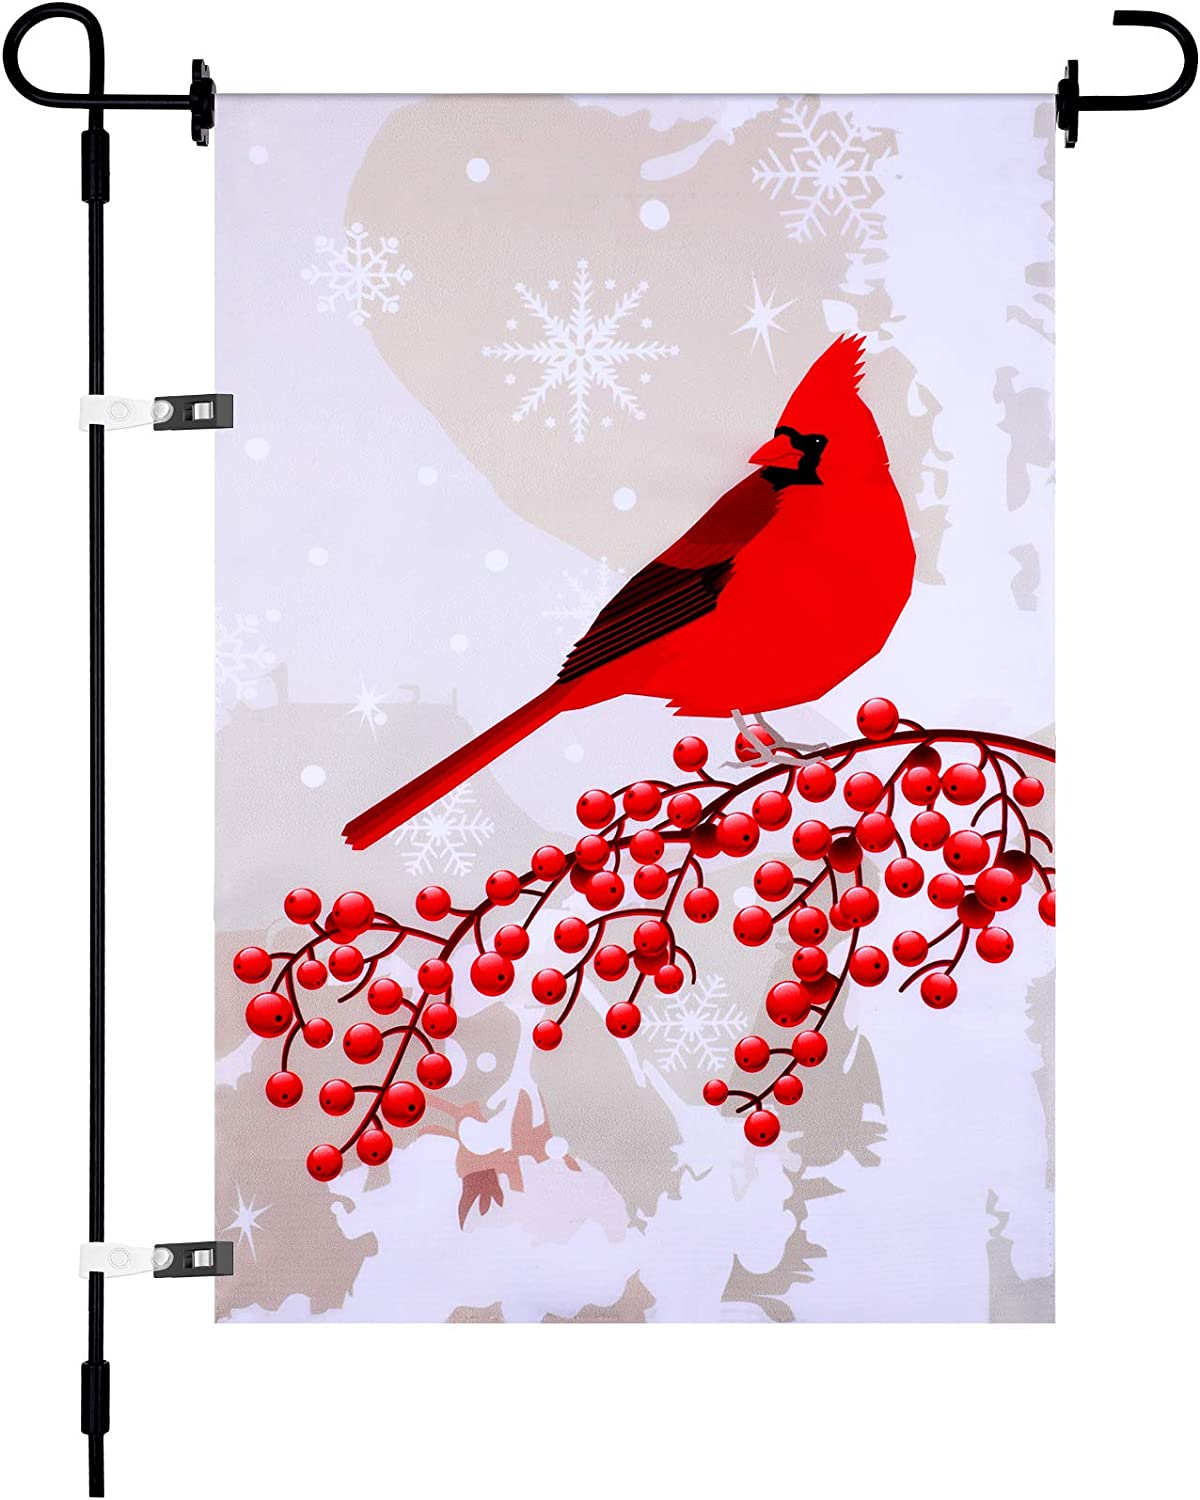 Red Cardinal Bird Garden Flag Christmas Garden Flag Winter Snow Background Holiday Decor Double Sided Yard Flag with 4 Flag Rubber Stopper Adjustable Anti-Wind Clip for House Decor (28 x 40 Inch)